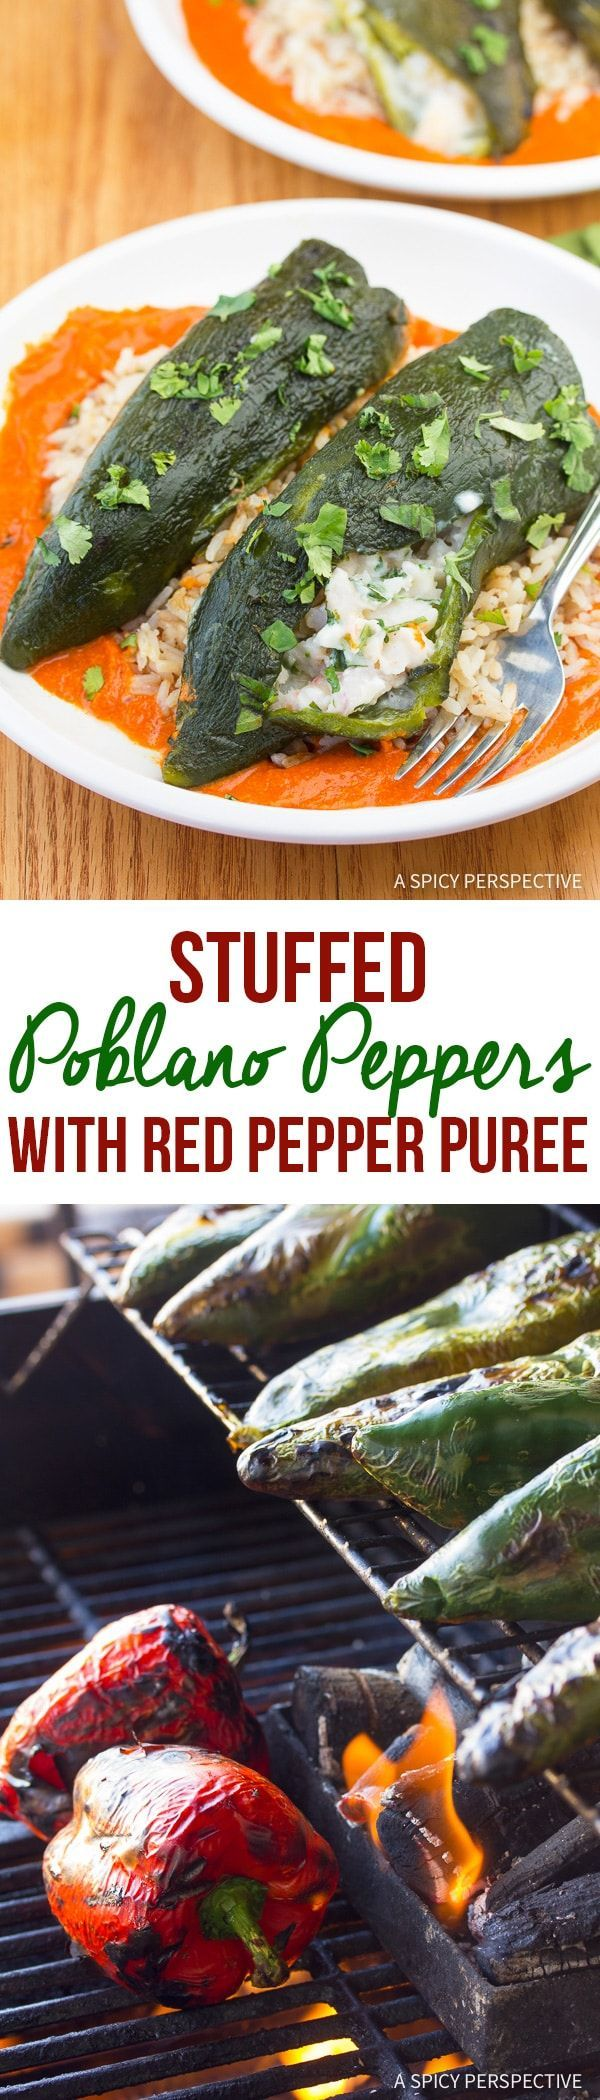 Healthy Chile Relleno! Stuffed Poblano Peppers with Red Pepper Puree Recipe via @spicyperspectiv